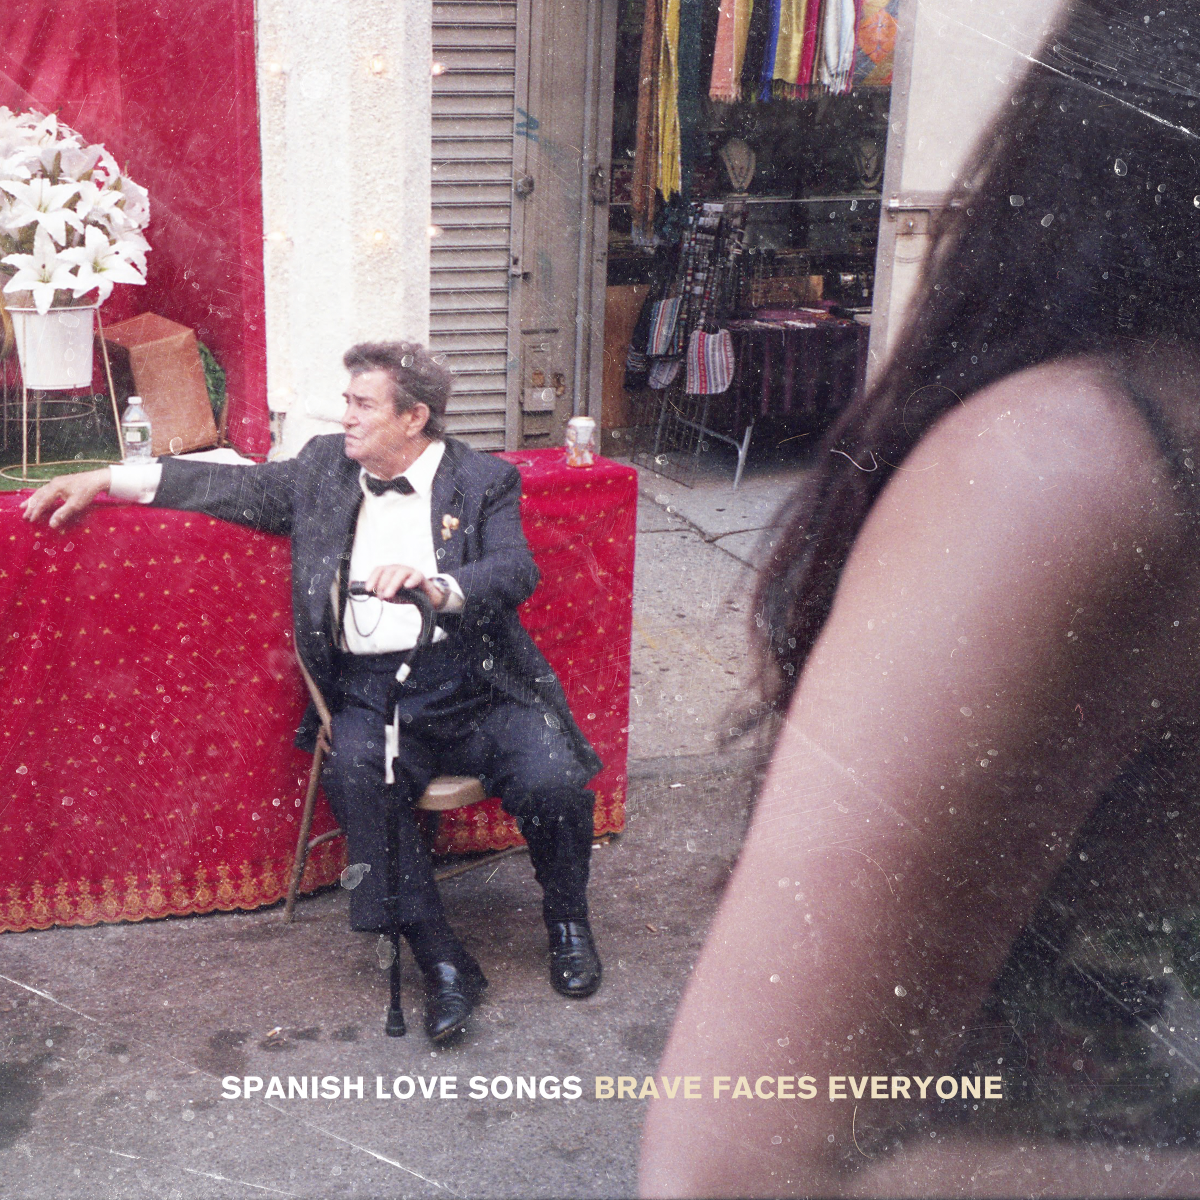 spanish-love-songs-brave-faces-everyone-pflichtkauf-album-review